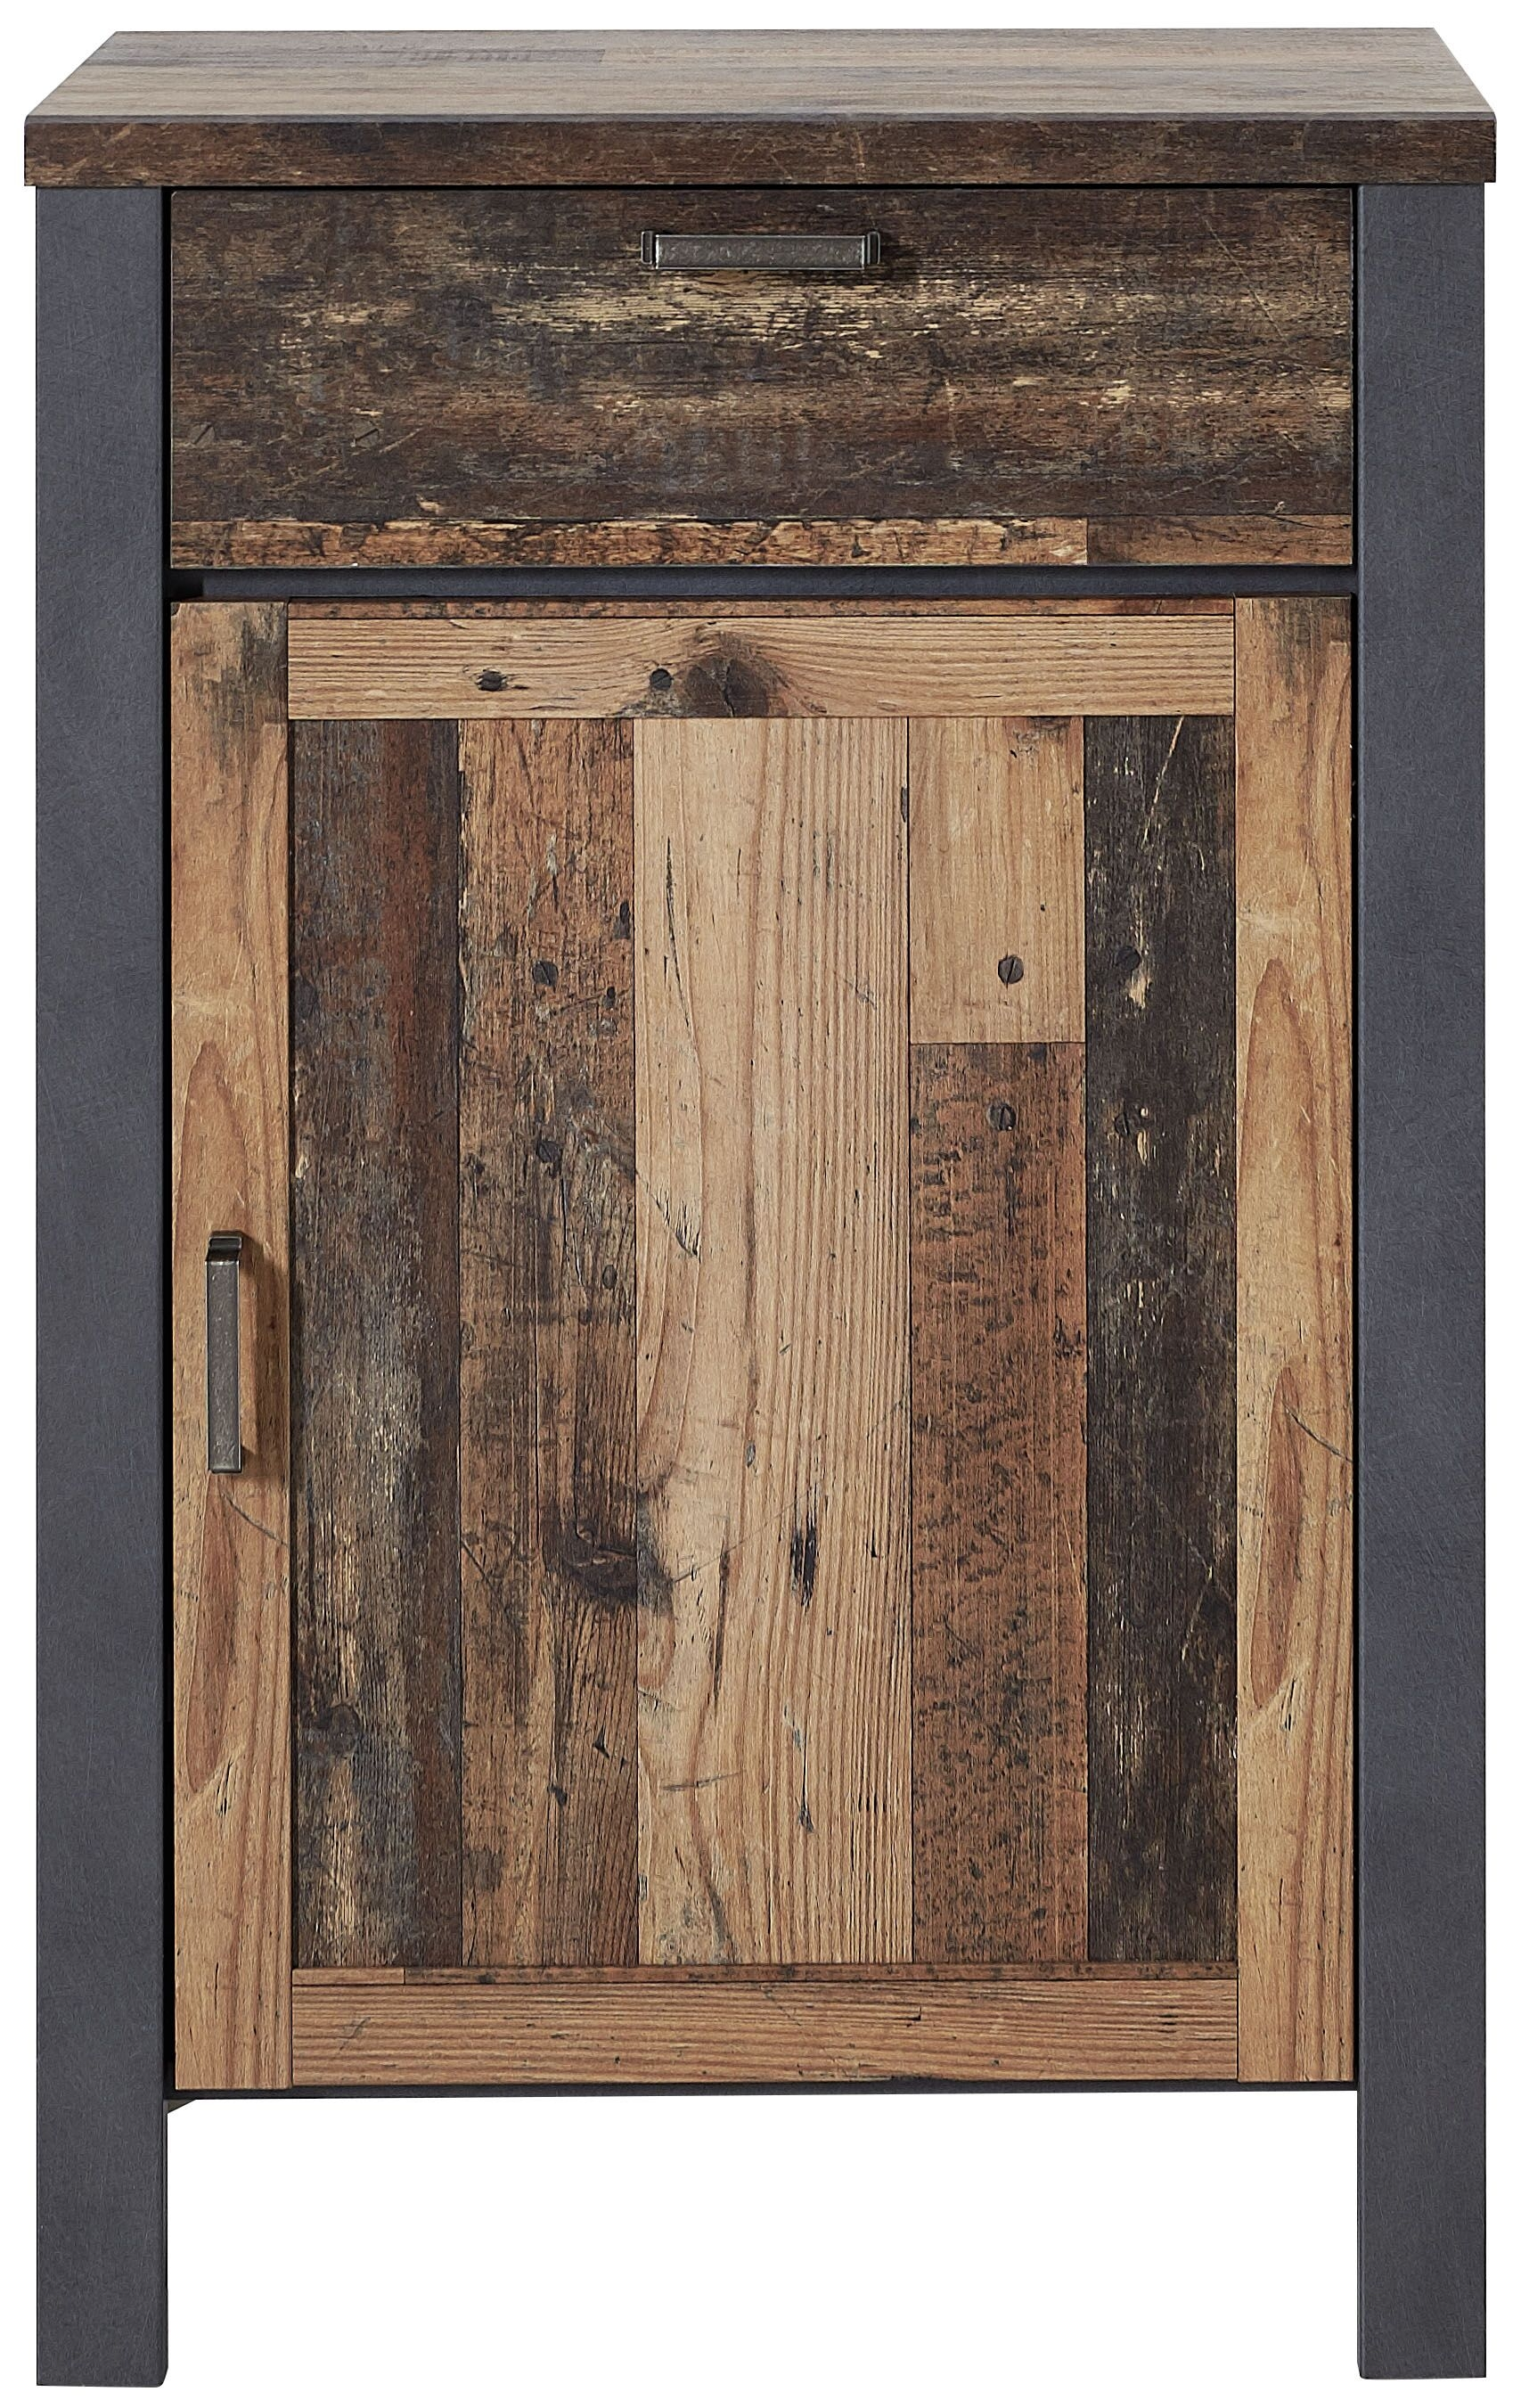 Cabinet din pal cu 1 usa si 1 sertar Chelsea Natural / Grafit, l69xA40xH105 cm imagine